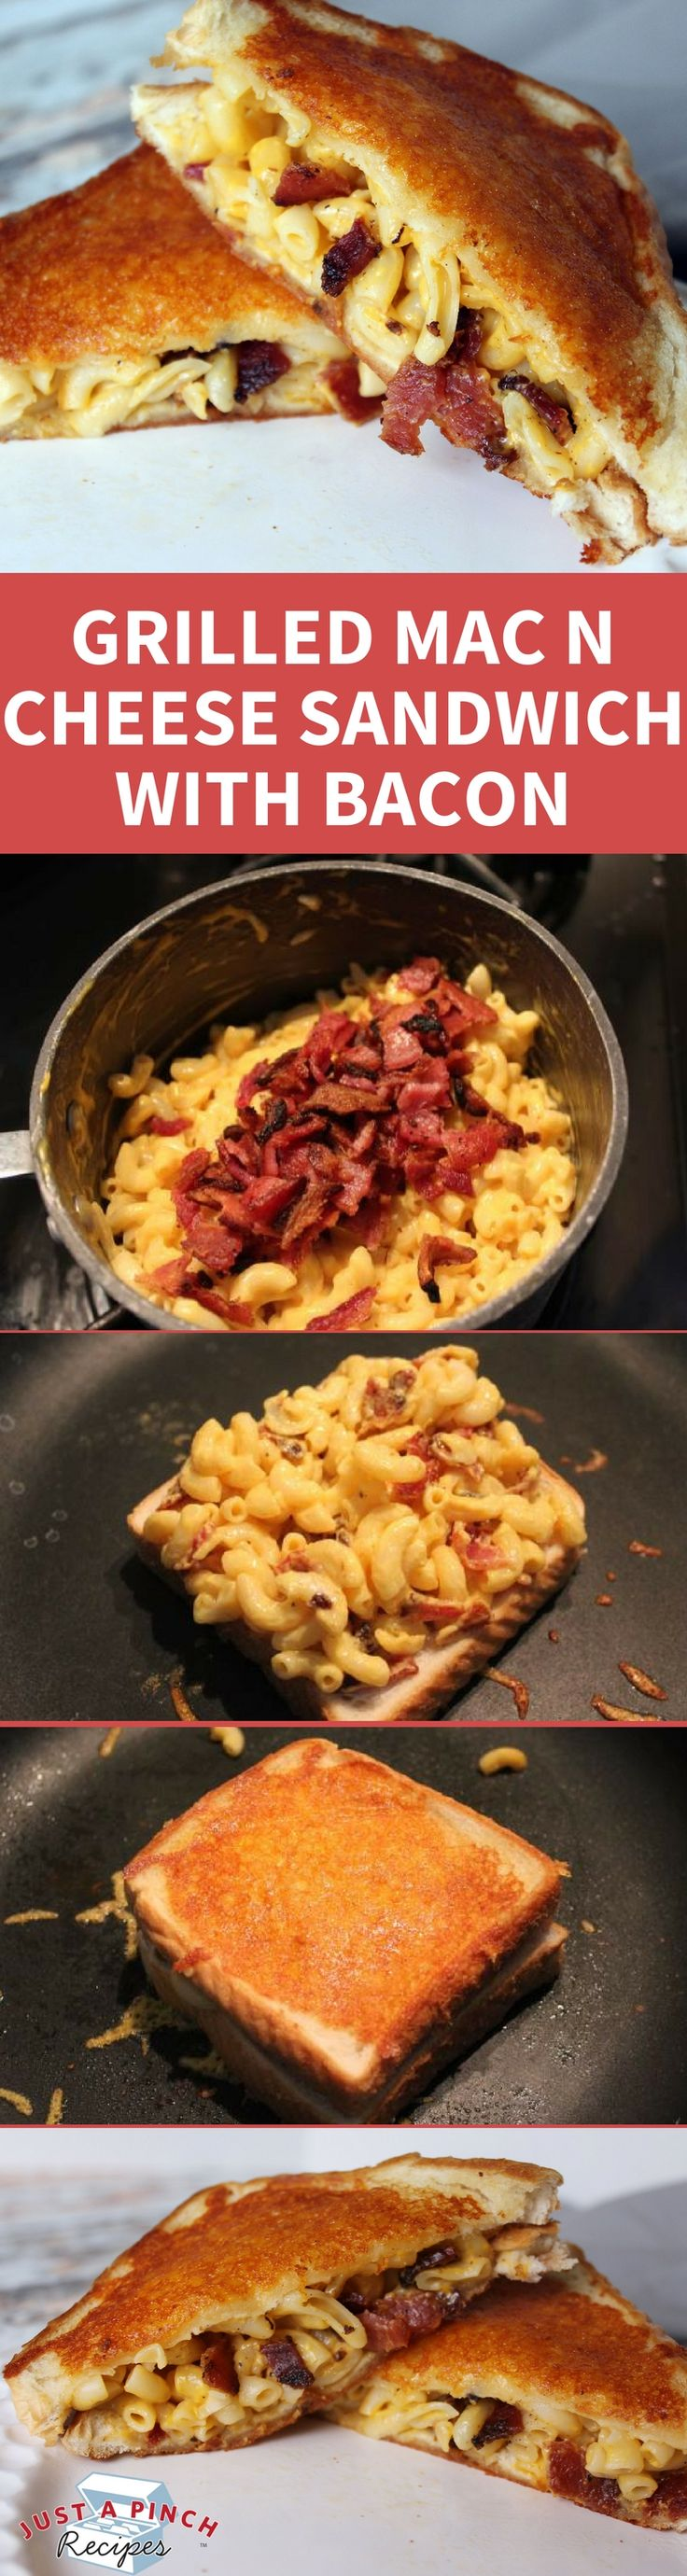 Bacon and mac & cheese rolled into one sandwich... pure decadence and deliciousness. The outside is buttery and a little crisp from the cheese. Inside, creamy mac & cheese and a smoky flavor from the bacon.